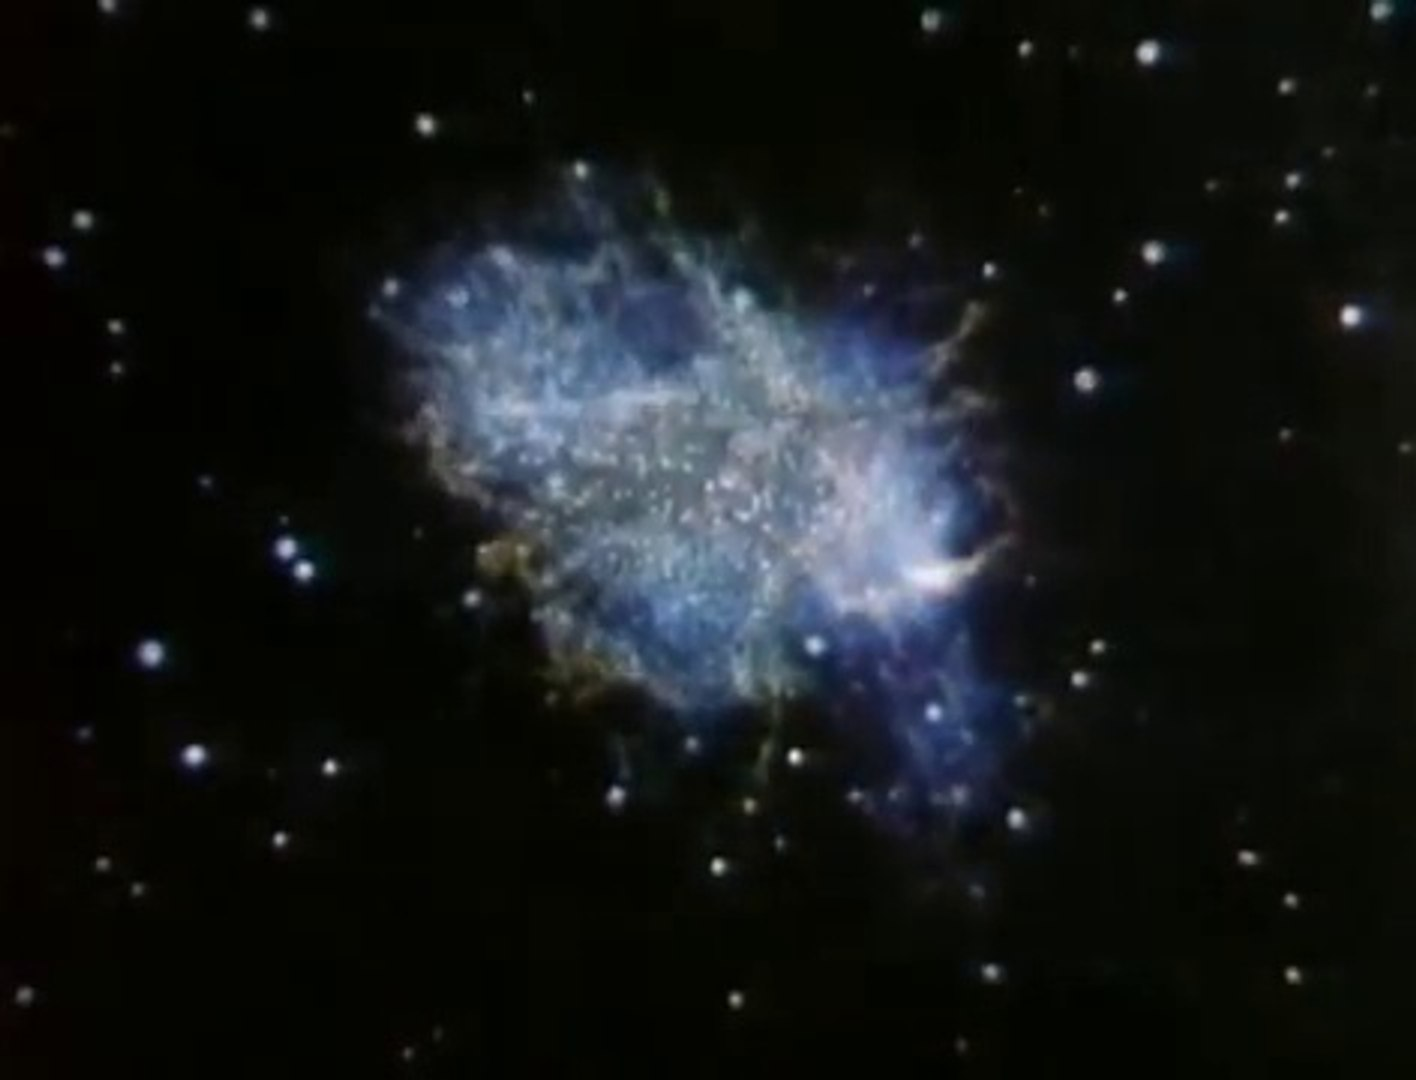 NOVA - DEATH OF A STAR - PBS - Discovery Science History Documentaries (full documentary)